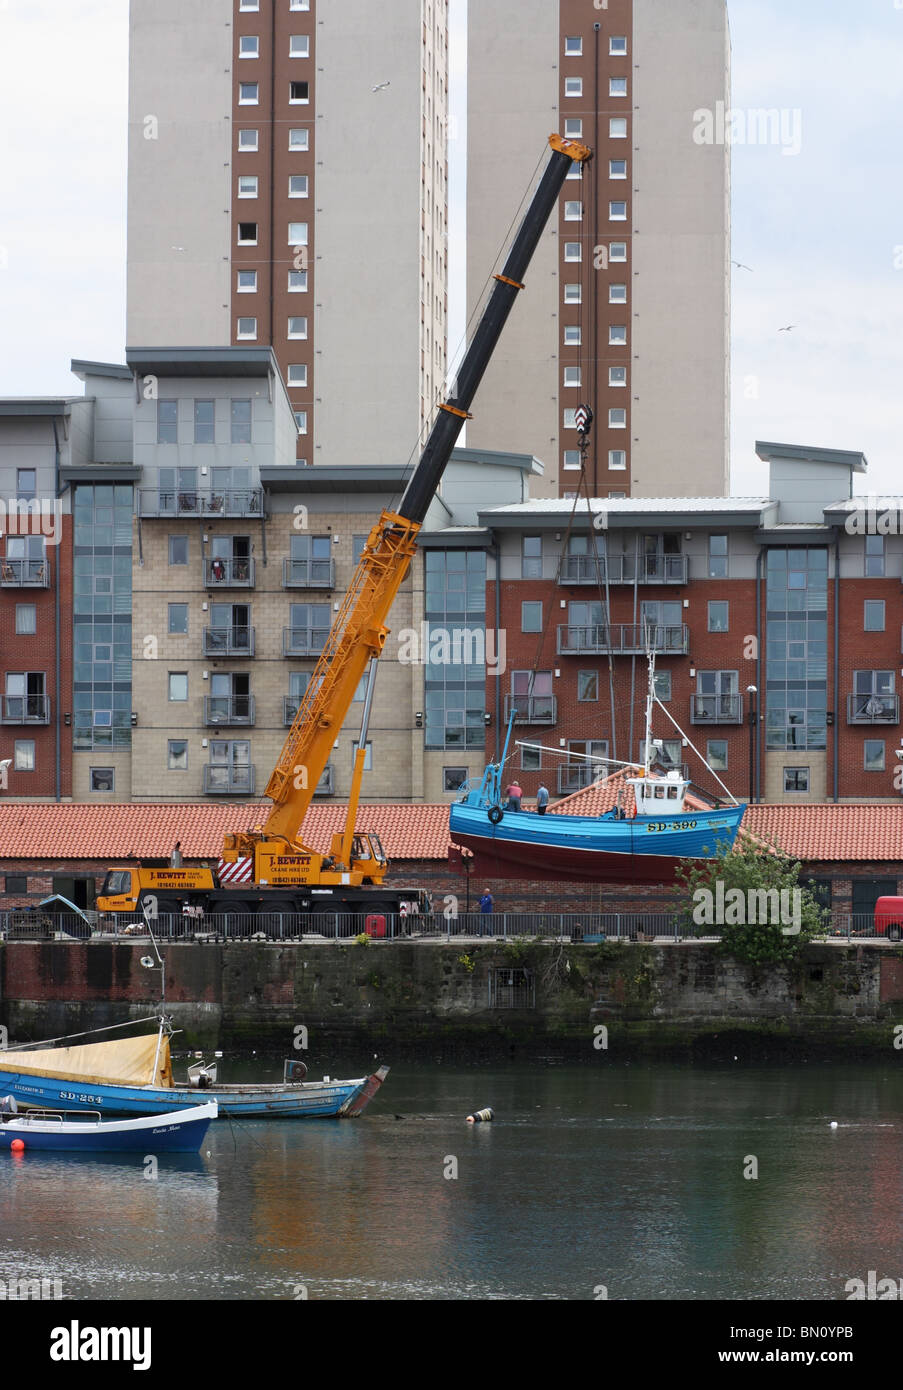 The wooden fishing vessel SD390 Isabella is lowered into the river Wear by a portable crane following  a refit. - Stock Image